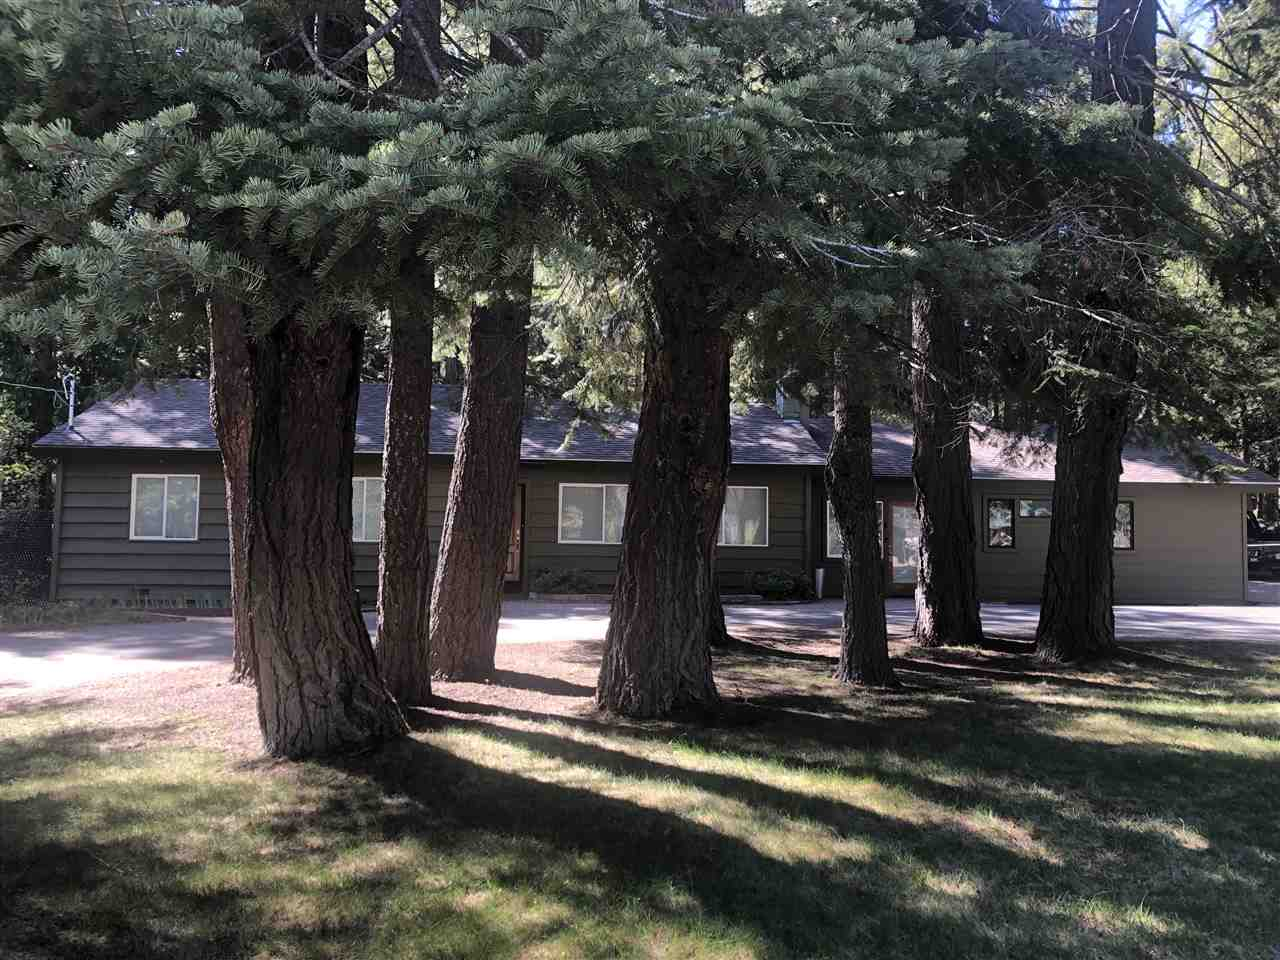 Single Family Home for Active at 3843 Mary Ann Lane 3843 Mary Ann Lane Lake Almanor, California 96137 United States